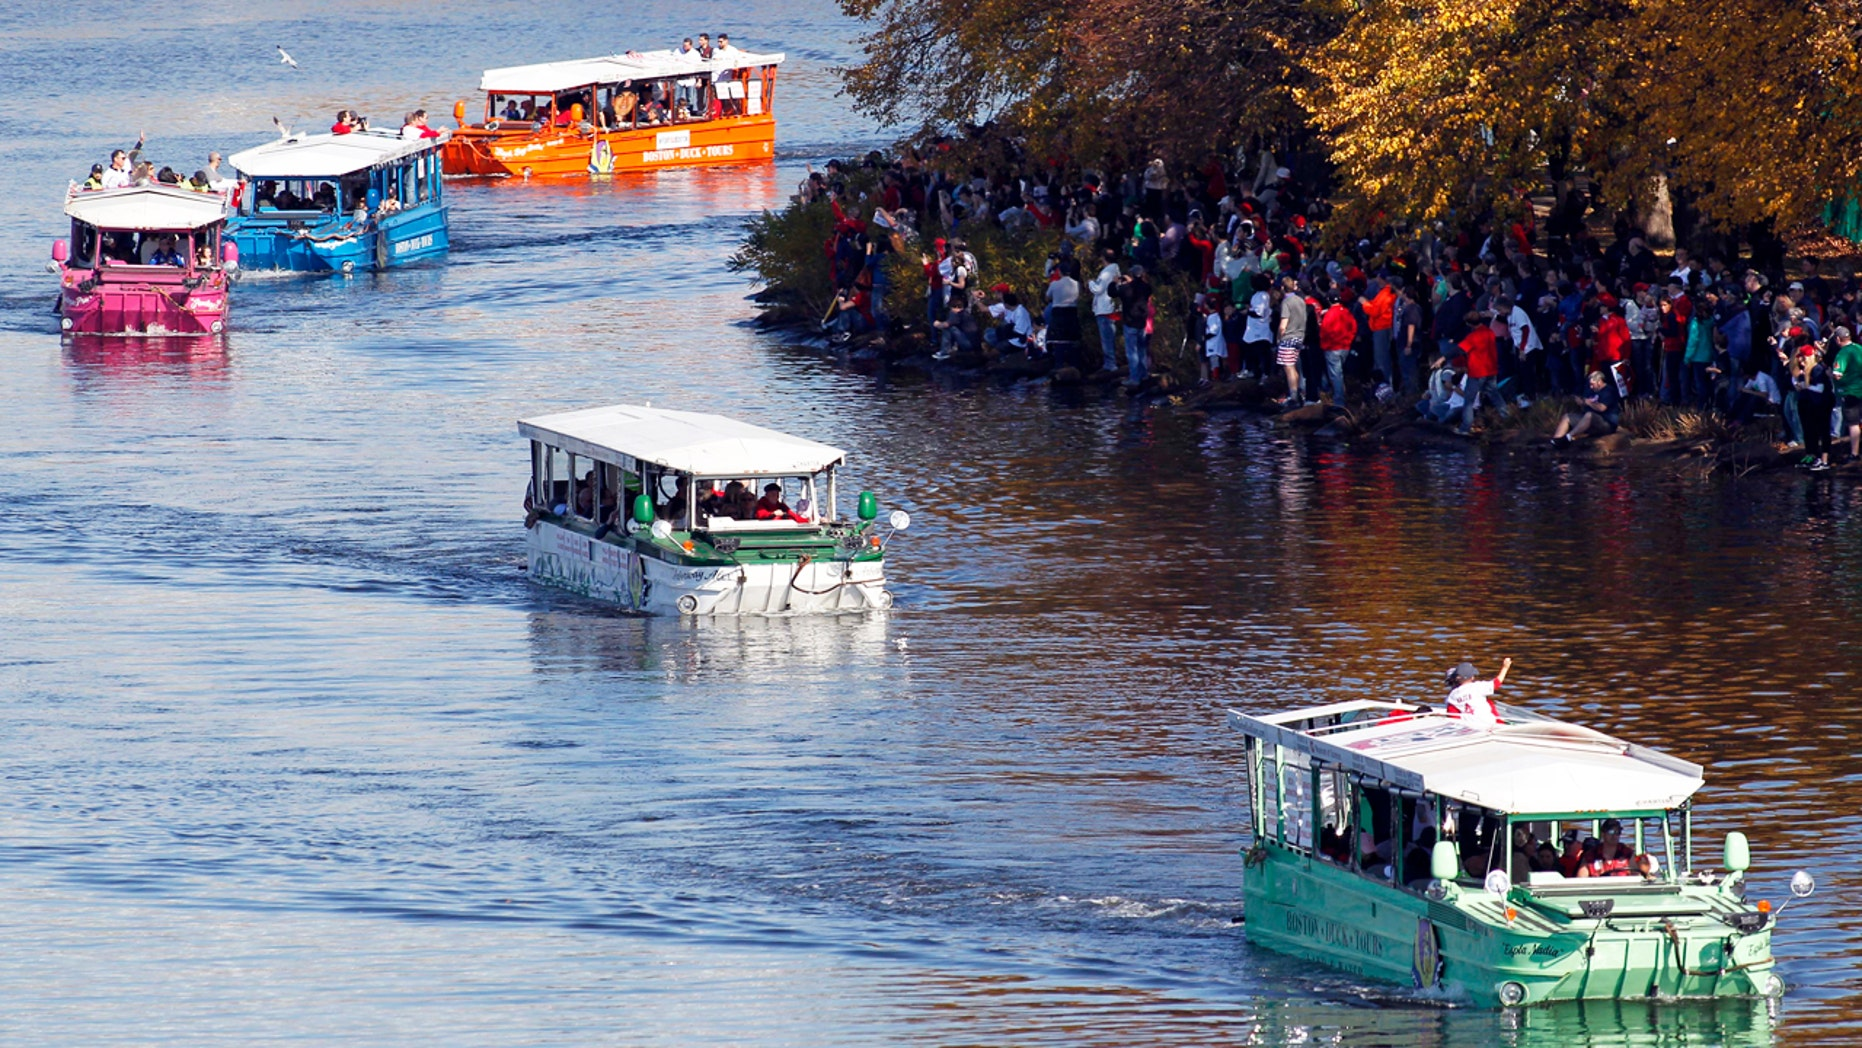 Boston Red Sox fans cheer on members of the team as they ride duck boats down the Charles River during the 2013 World Series parade and celebration.